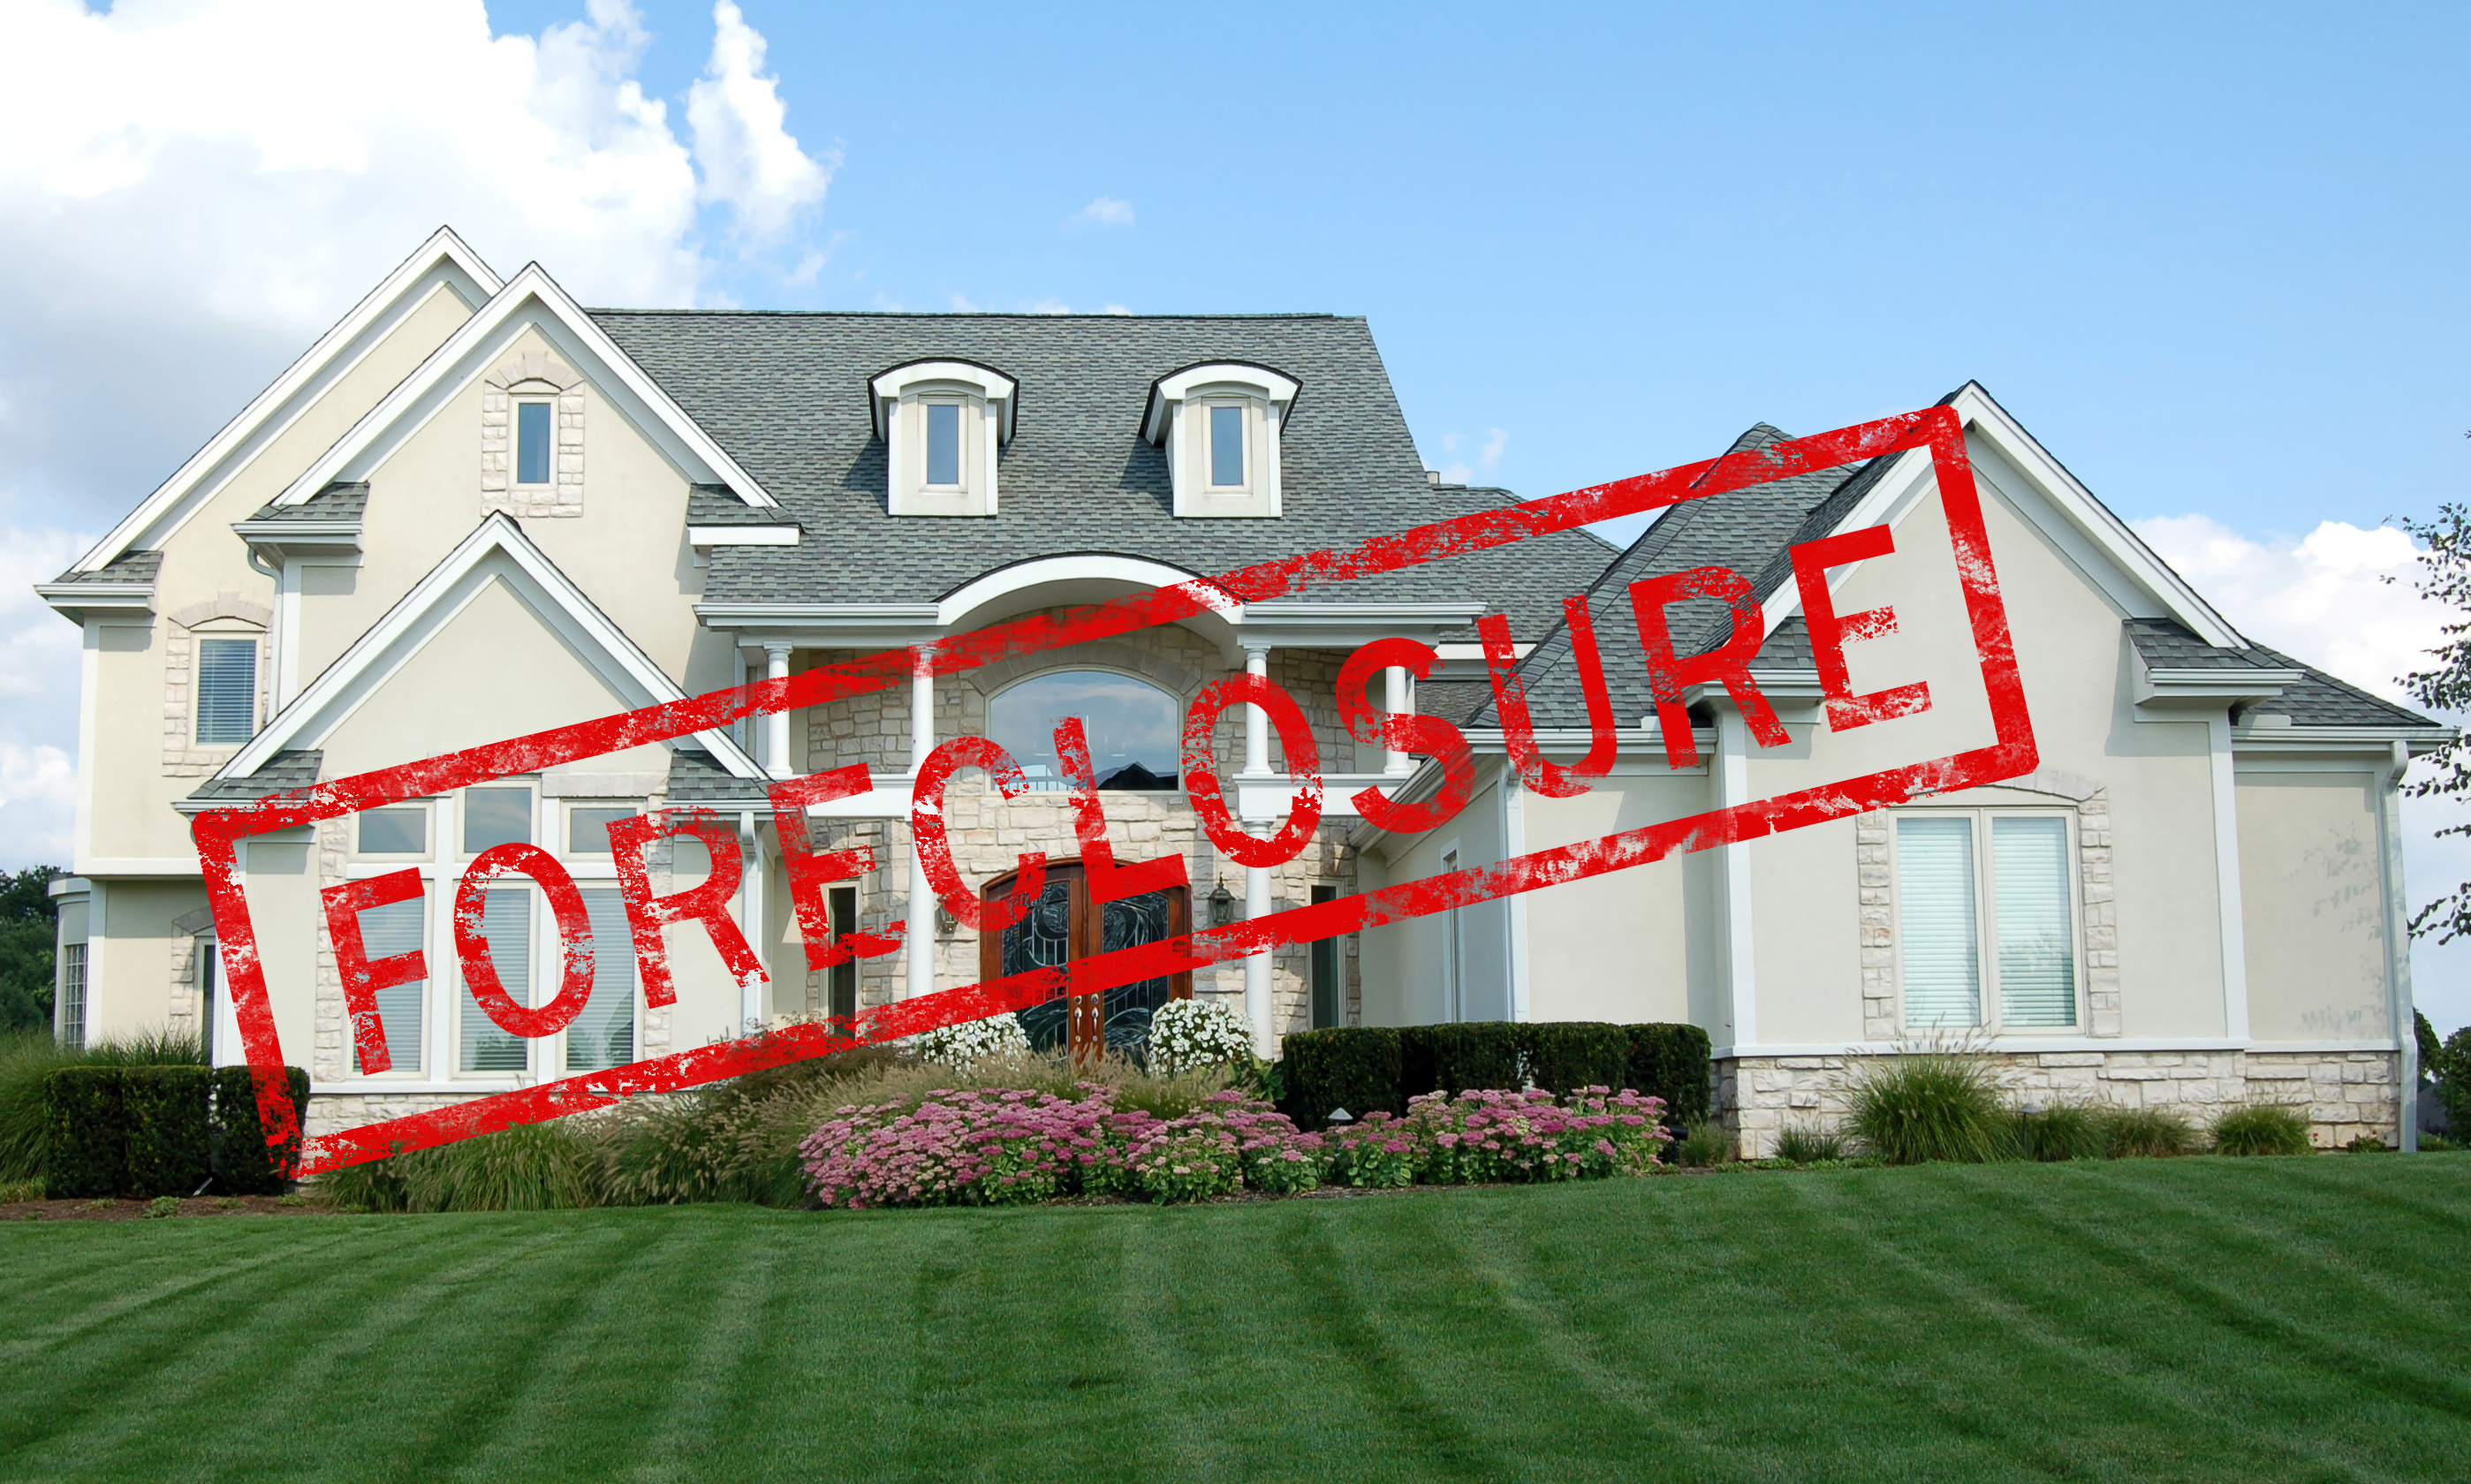 Call A. M. Appraisals to order valuations for Lexington foreclosures